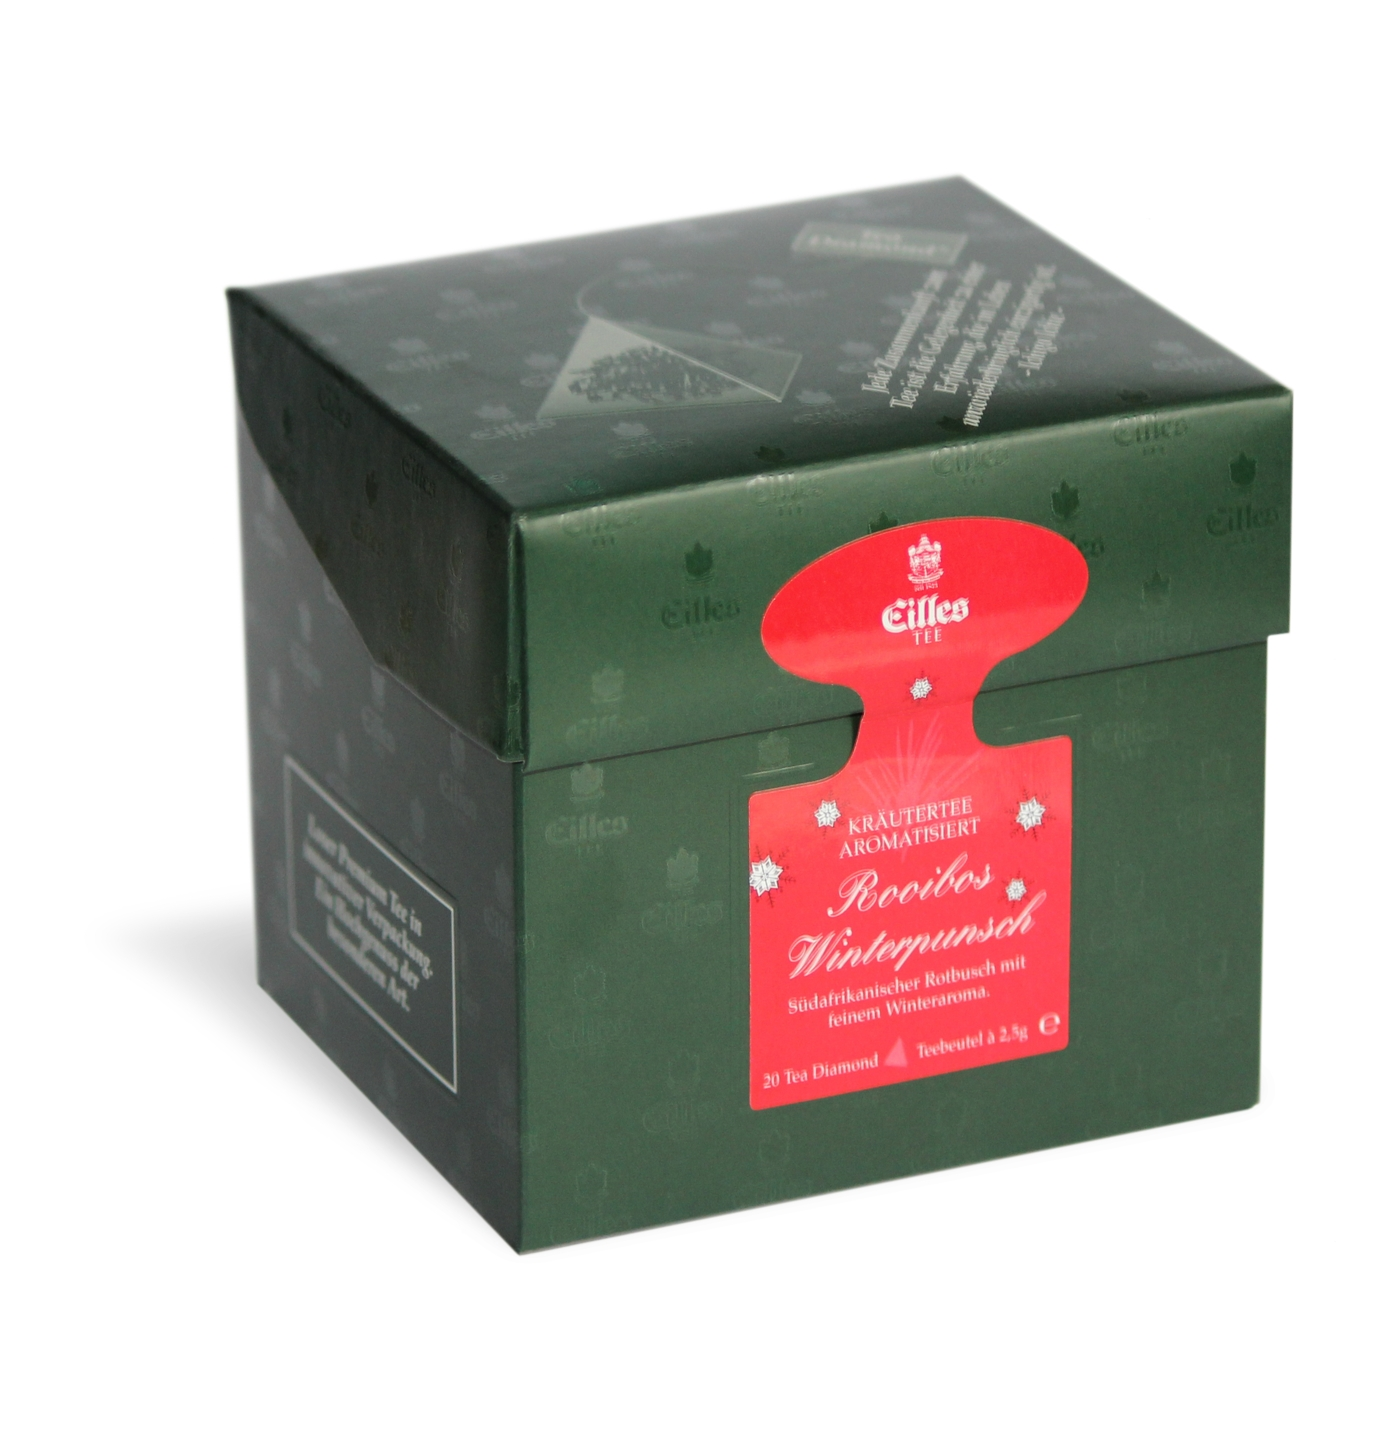 EILLES Tea Diamond Rooibos Winterpunsch